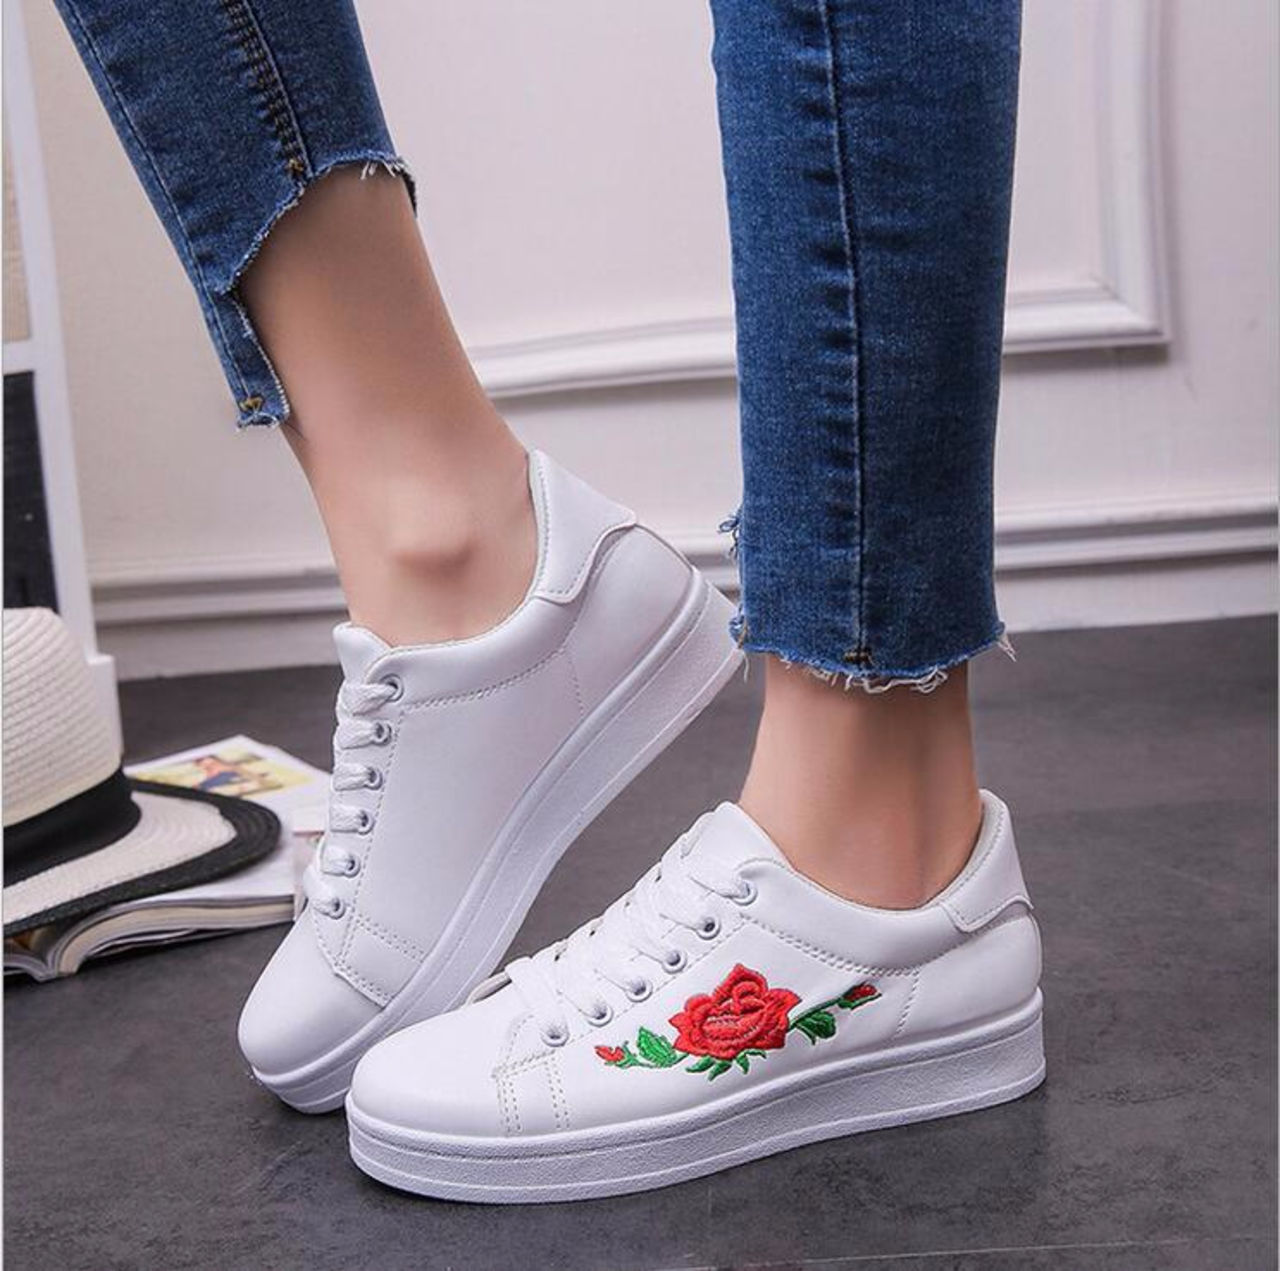 Wholesale Fashion Style and Cheap Clothes from China Wholesale fashion shoes from korea